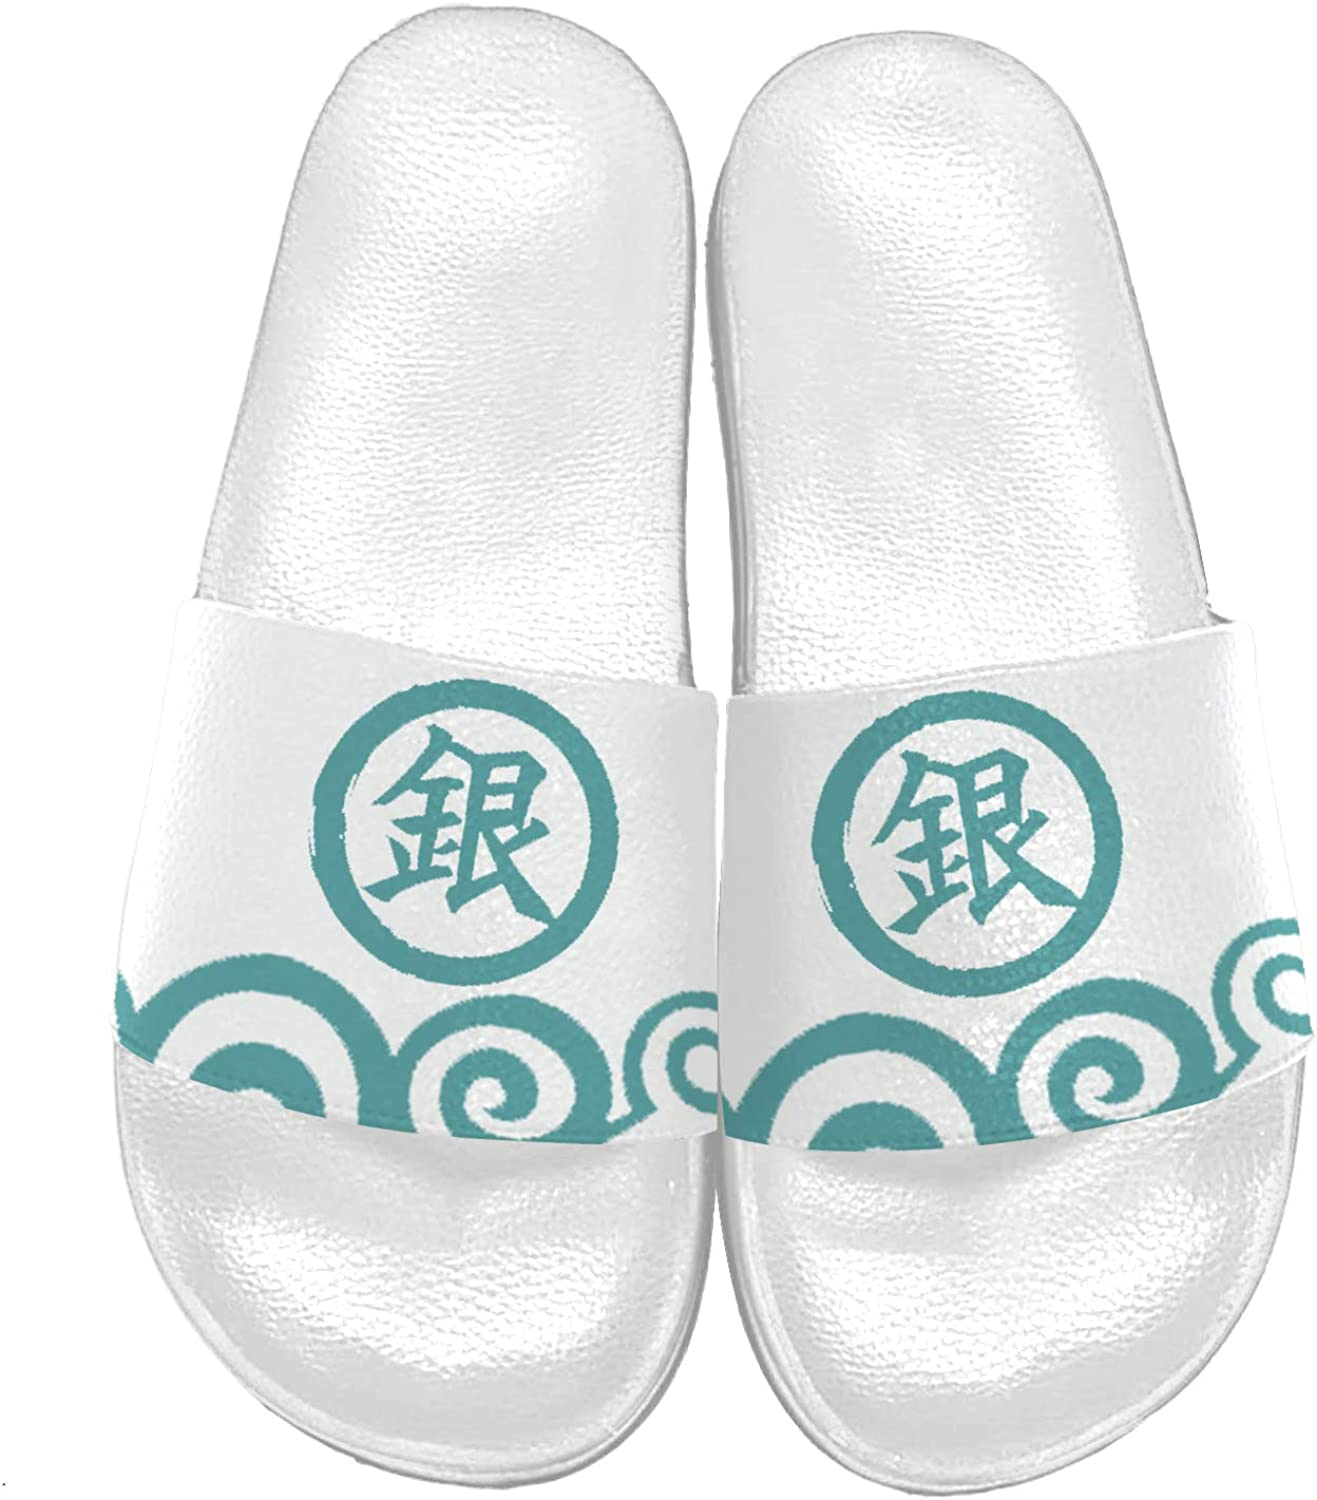 Japanese Anime Slippers for Men Women Custom Comfort Casual Anime Cosplay Slide Sandals Indoor Outdoor Gifts for Holiday